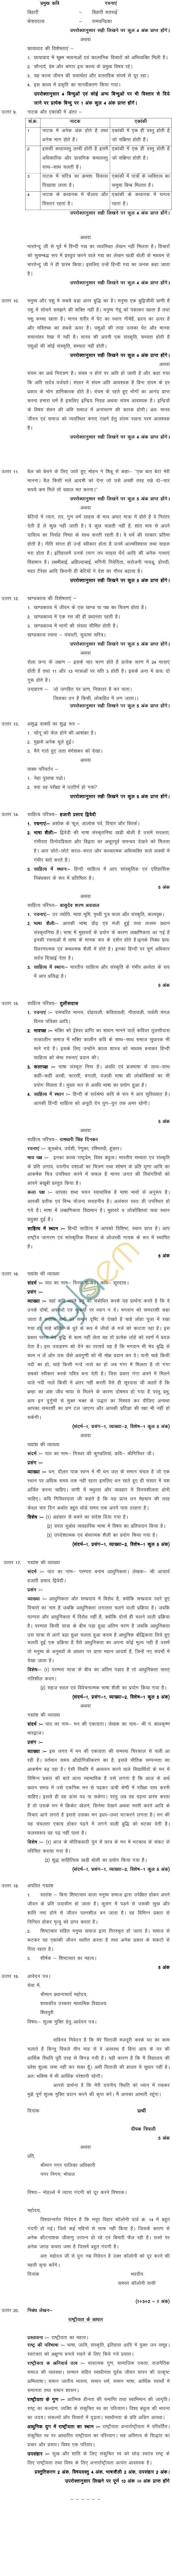 MP Board Class X Hindi Special Model Questions & Answers - Set 2